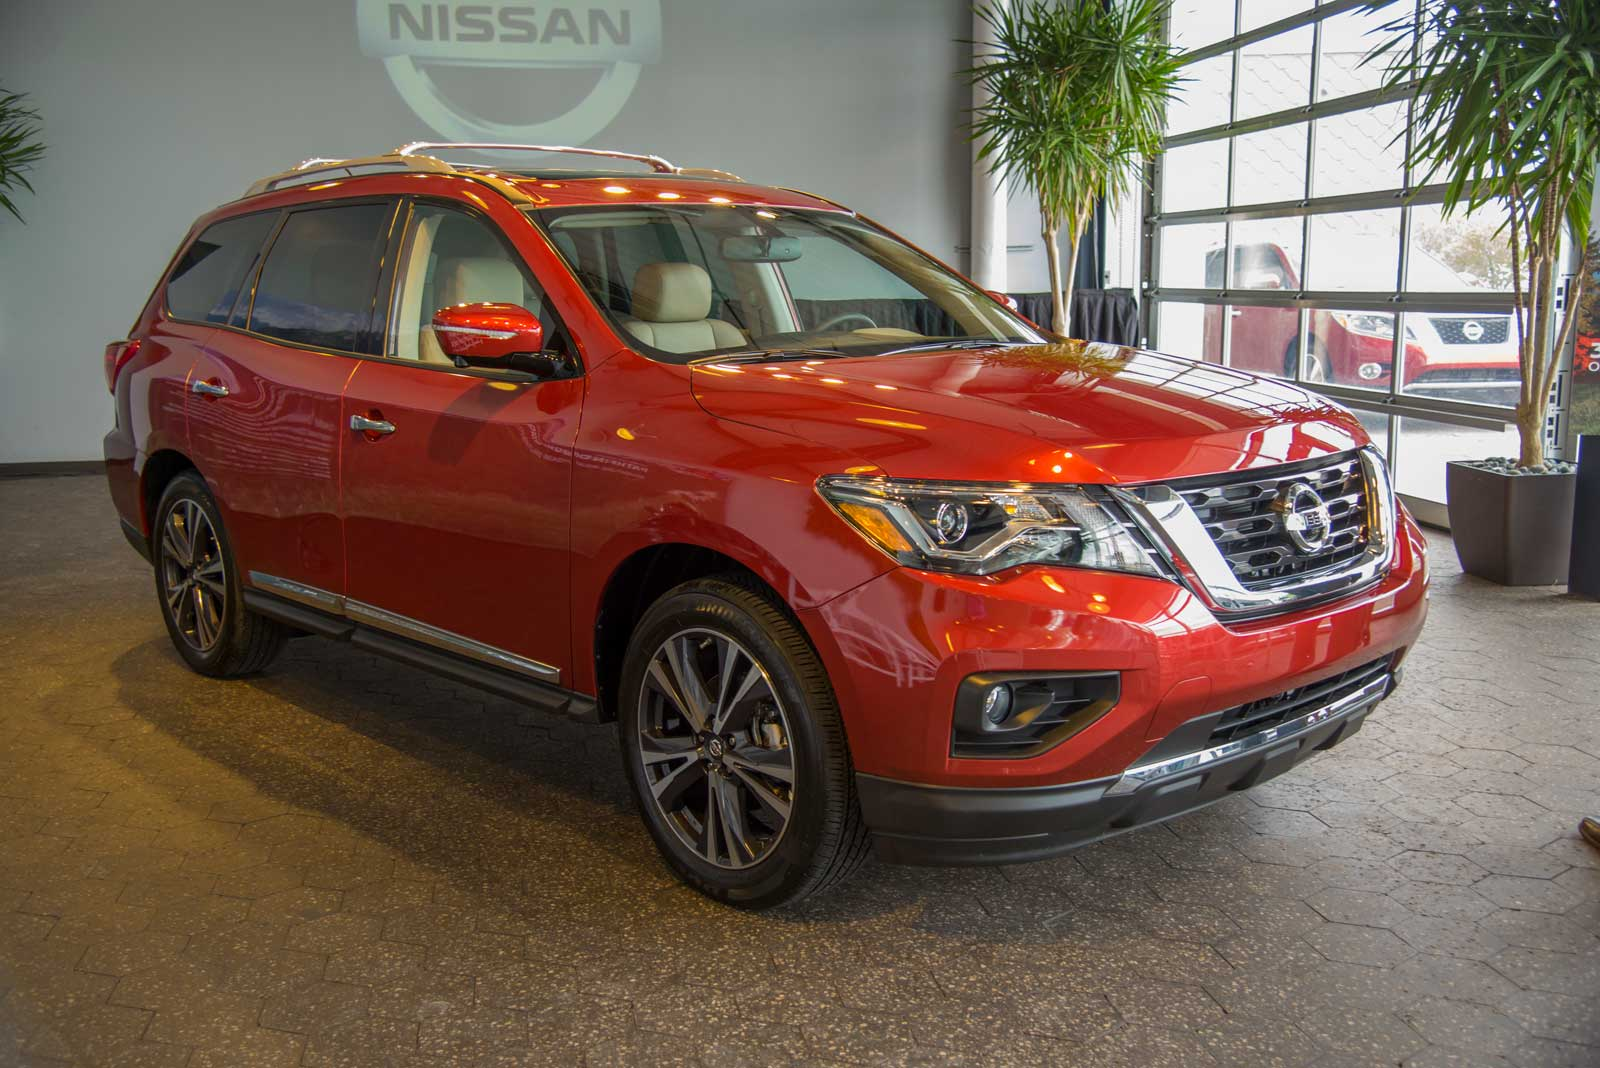 2017 nissan pathfinder gains power style and a better tow rating news. Black Bedroom Furniture Sets. Home Design Ideas